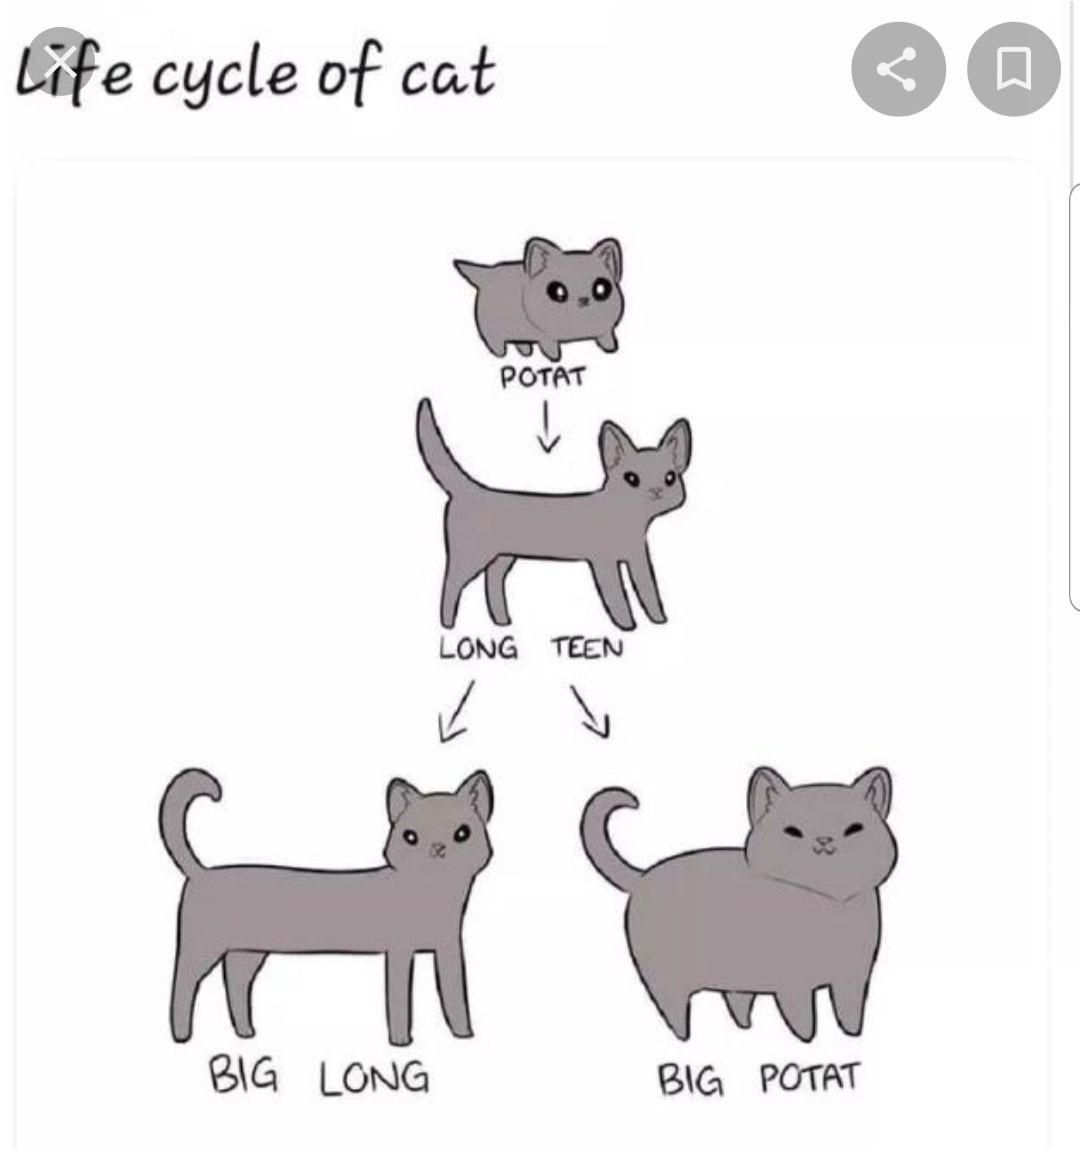 Lifecycle of cat